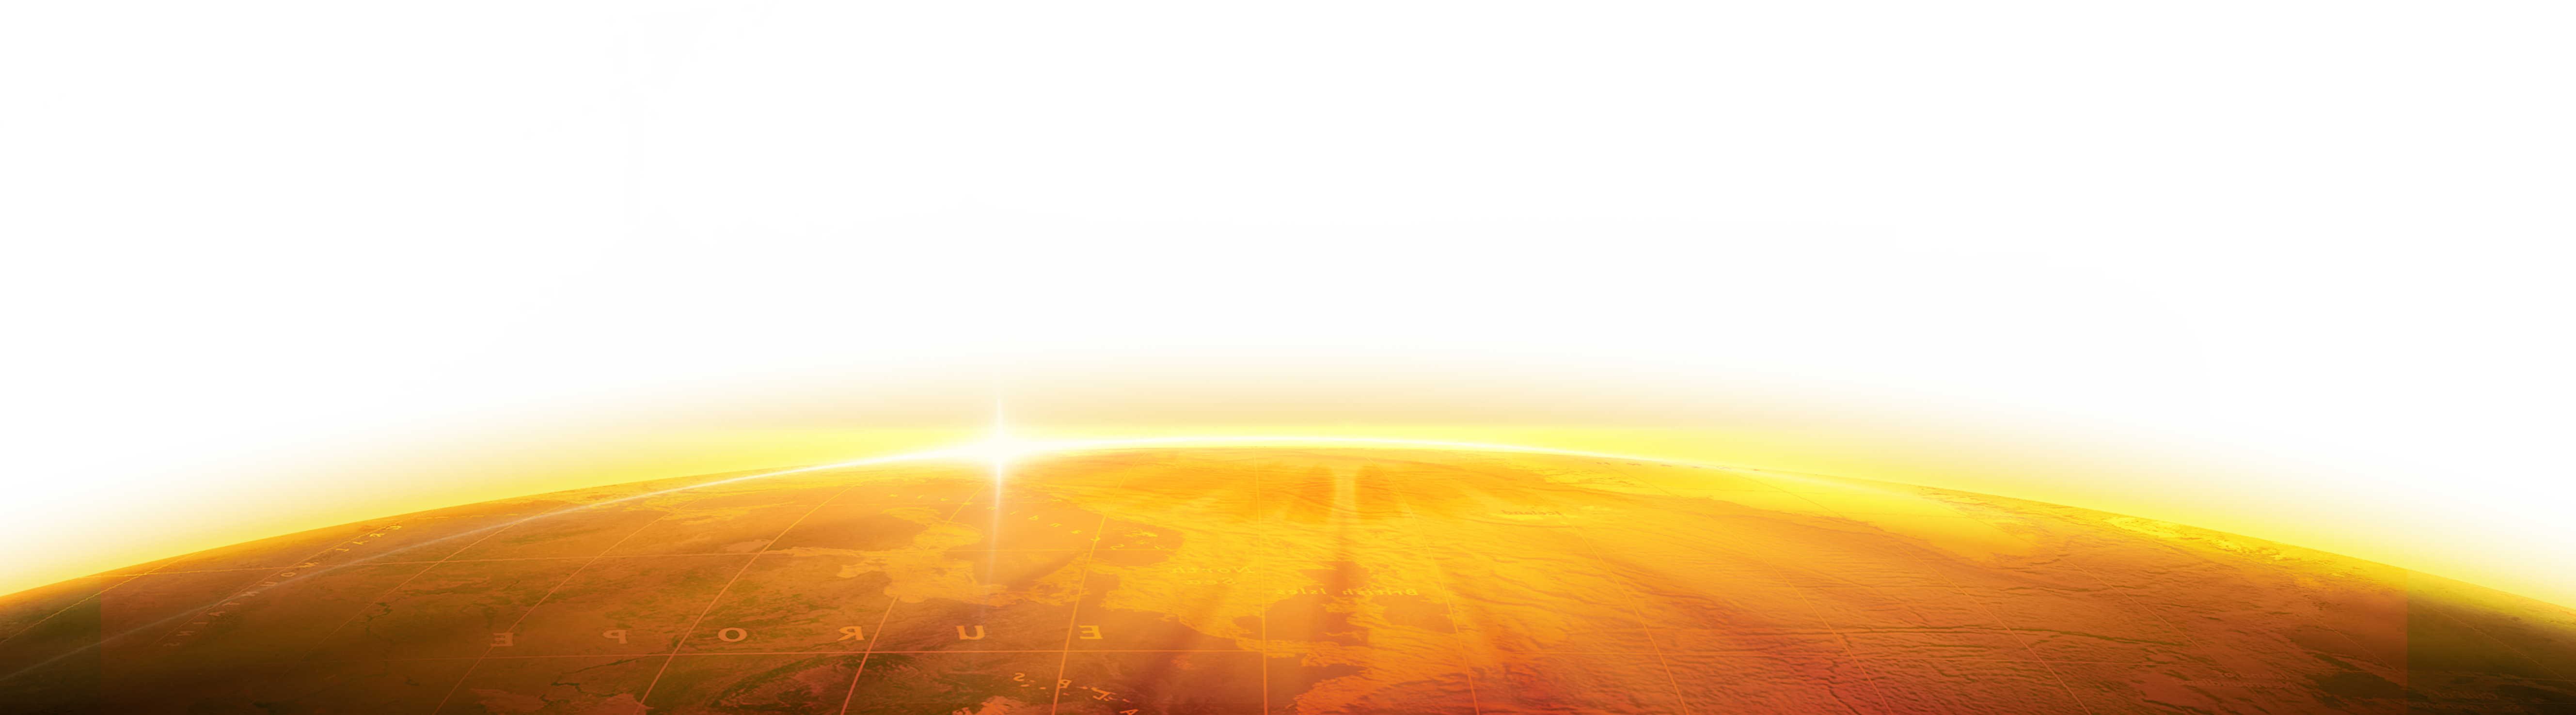 5315x1476 Collection Of Free Sky Vector Sunlight. Download On Ubisafe